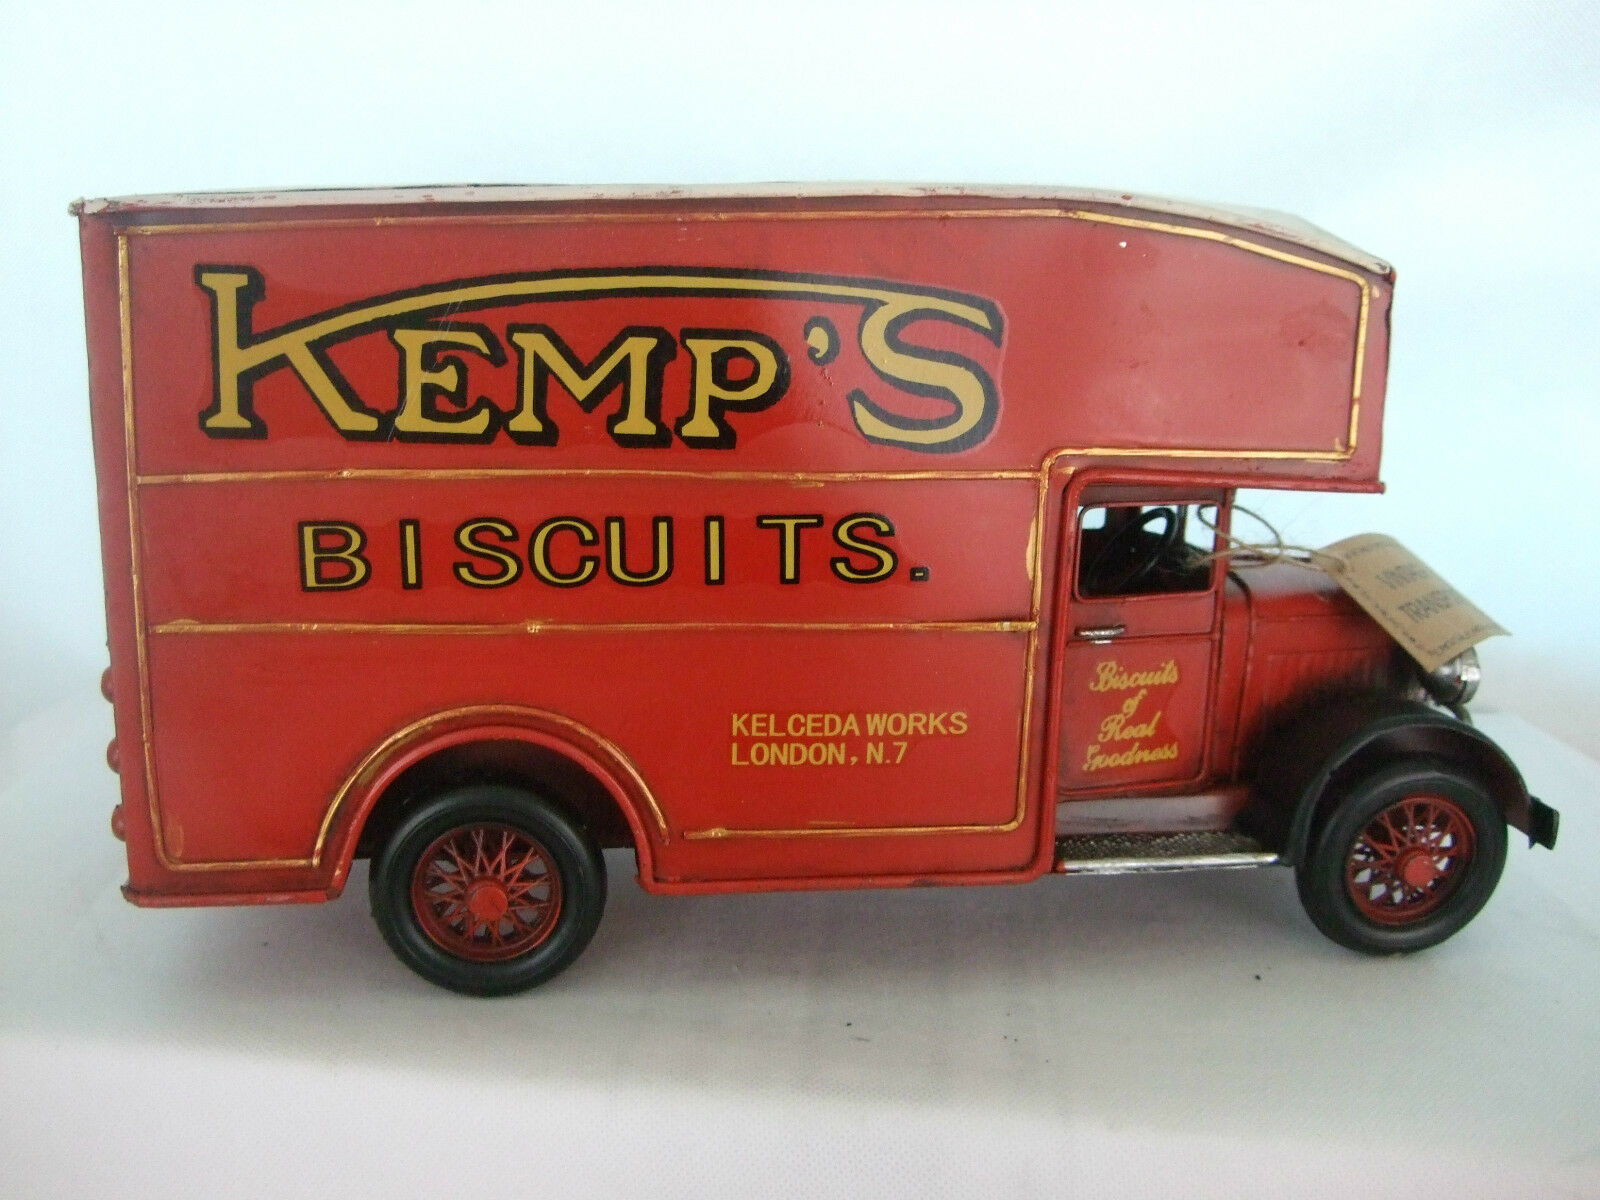 Tin Plate Model of a Vintage large Biscuits Deliver Van  Red  Ornament  Gift